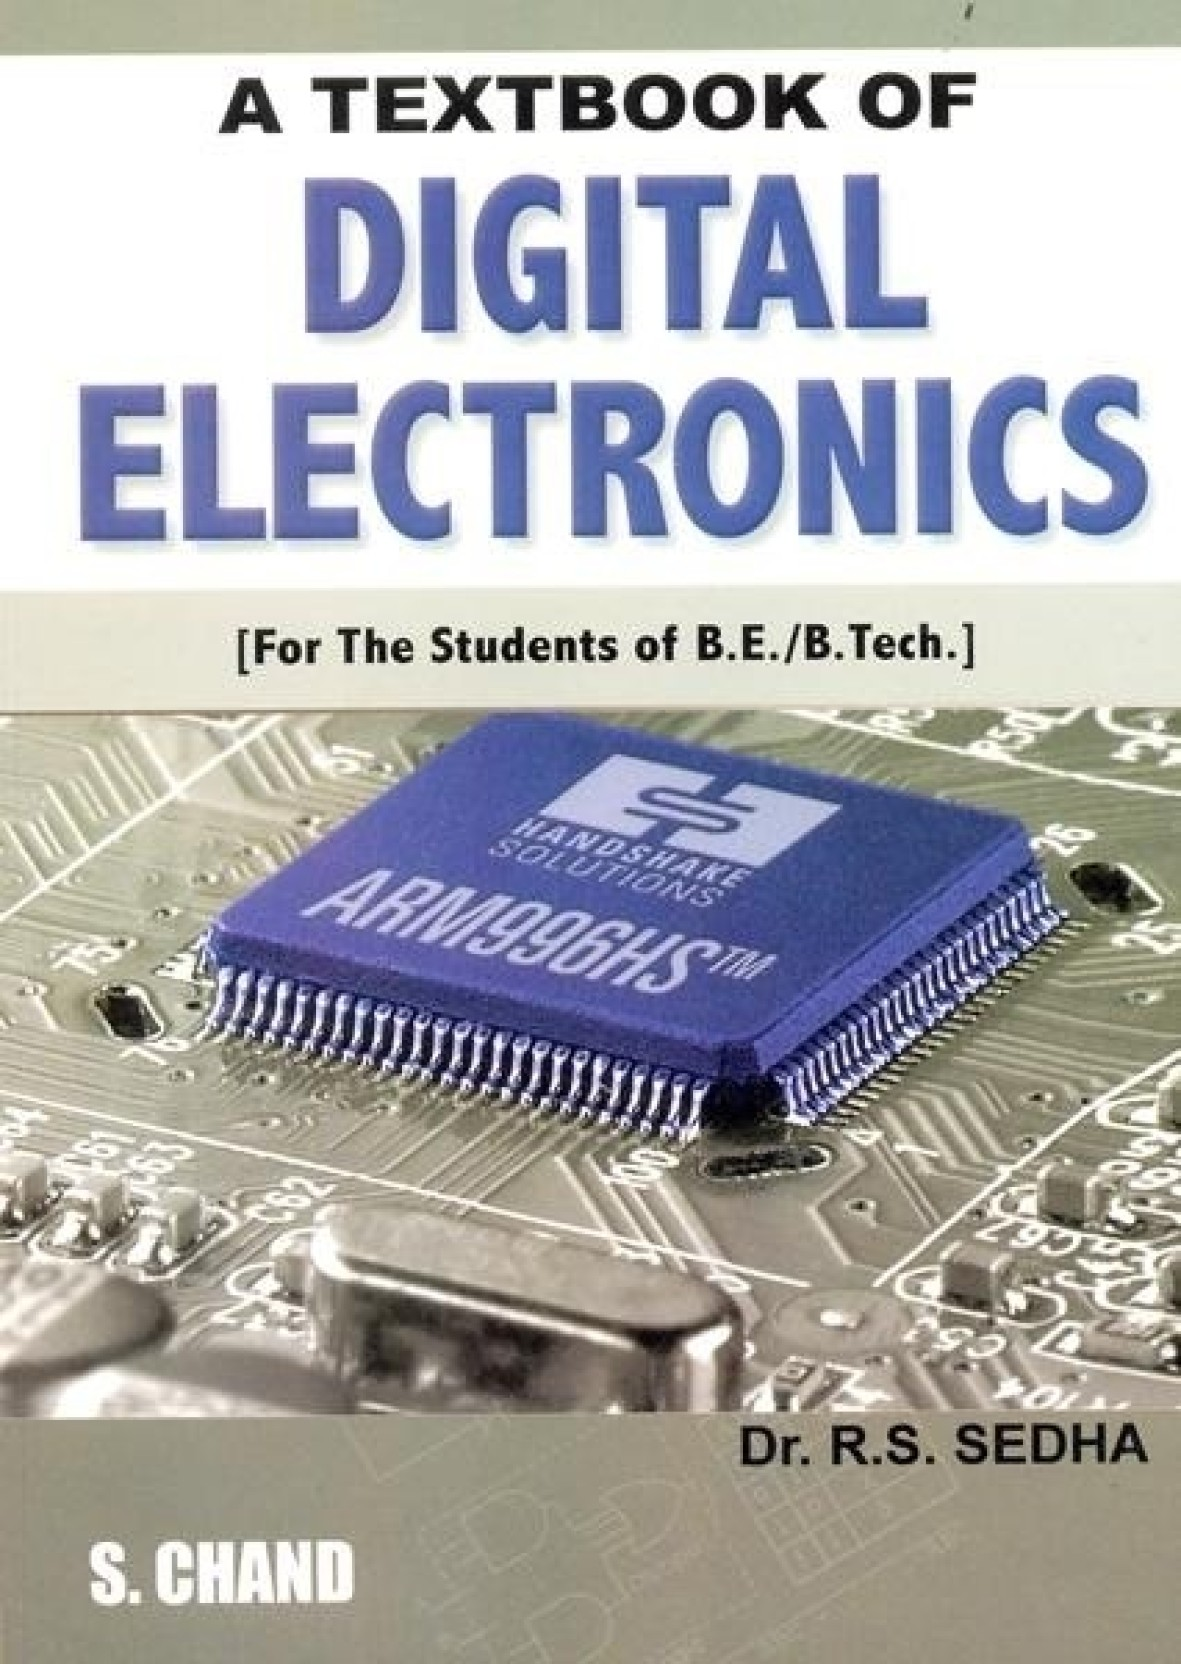 A Text Book Of Digital Electronics 2nd Edition Buy Electronic Circuits Textbook Home